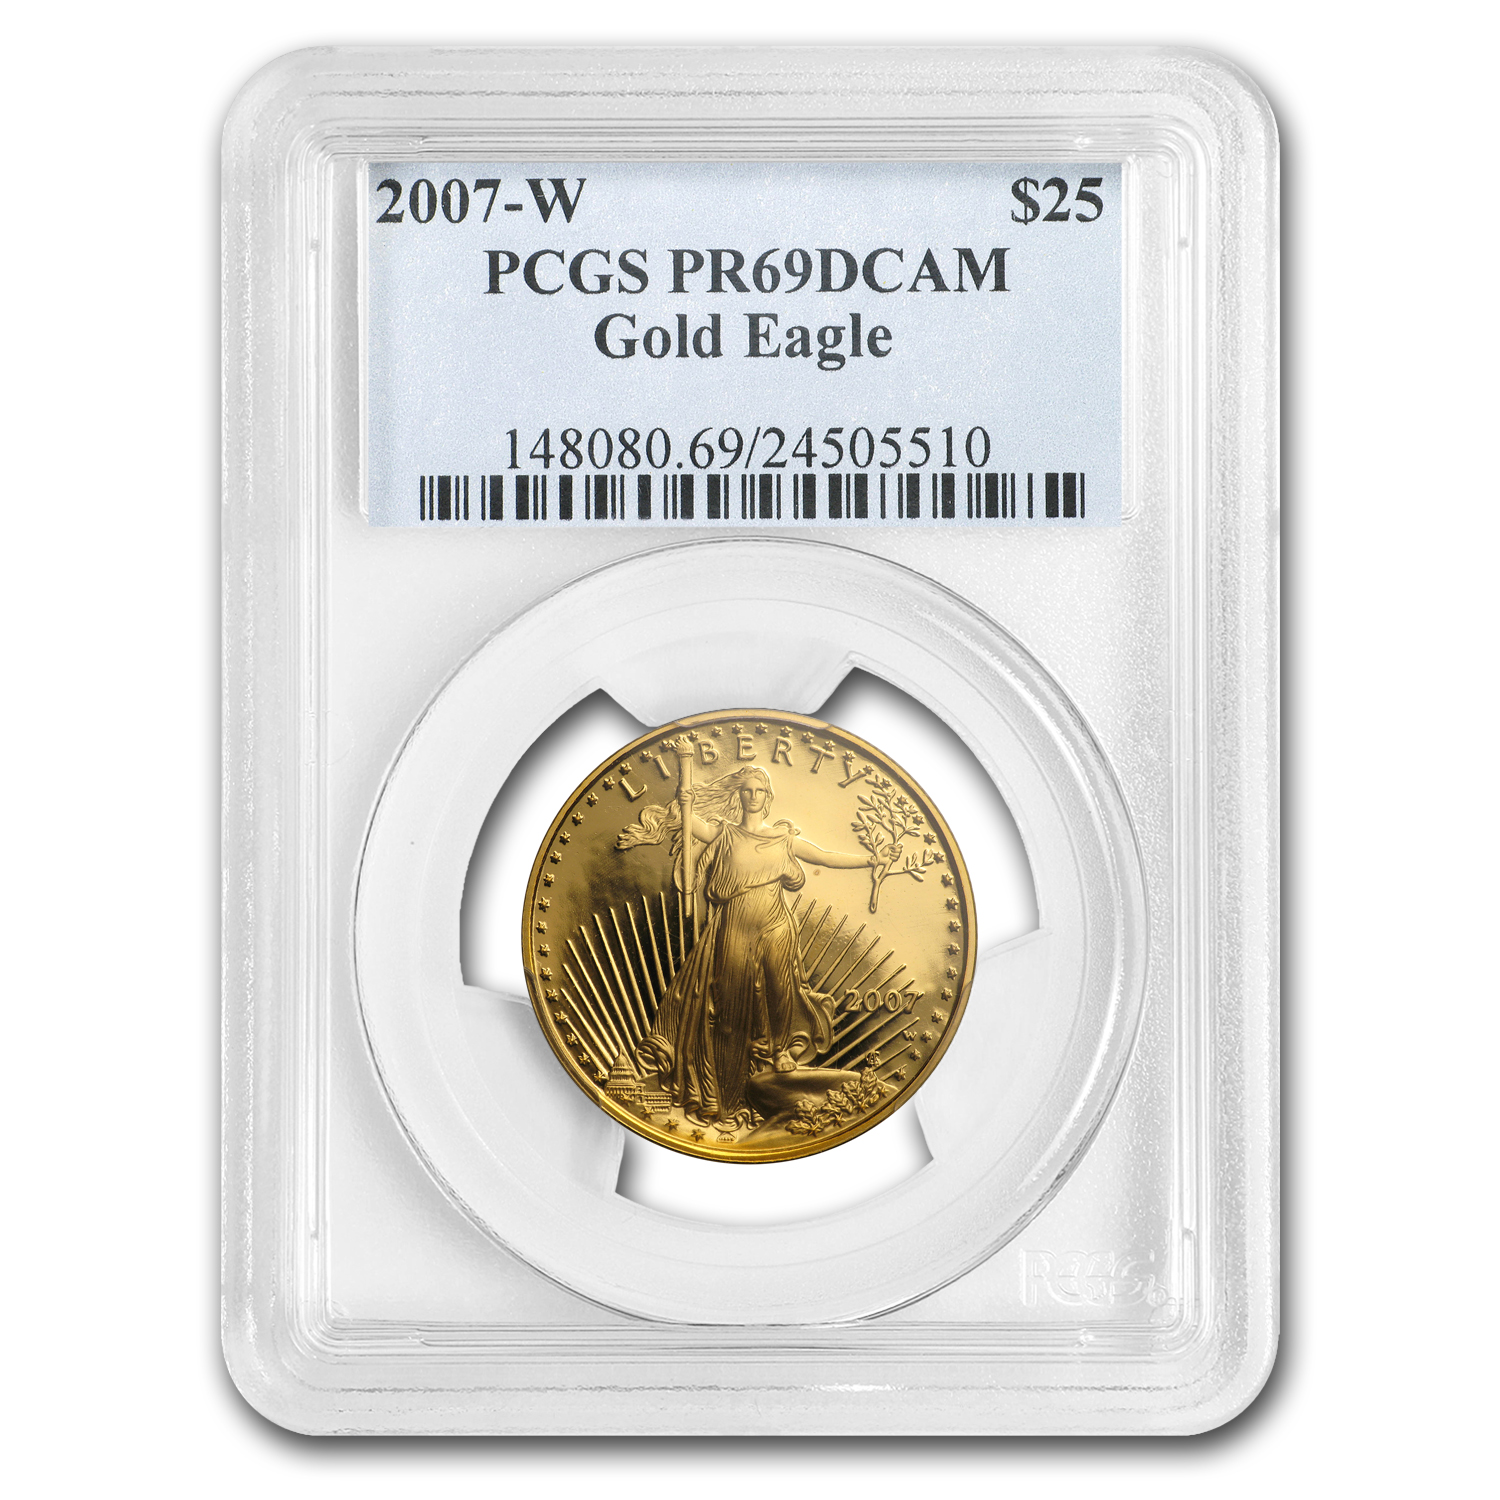 2007-W 1/2 oz Proof Gold American Eagle PR-69 PCGS